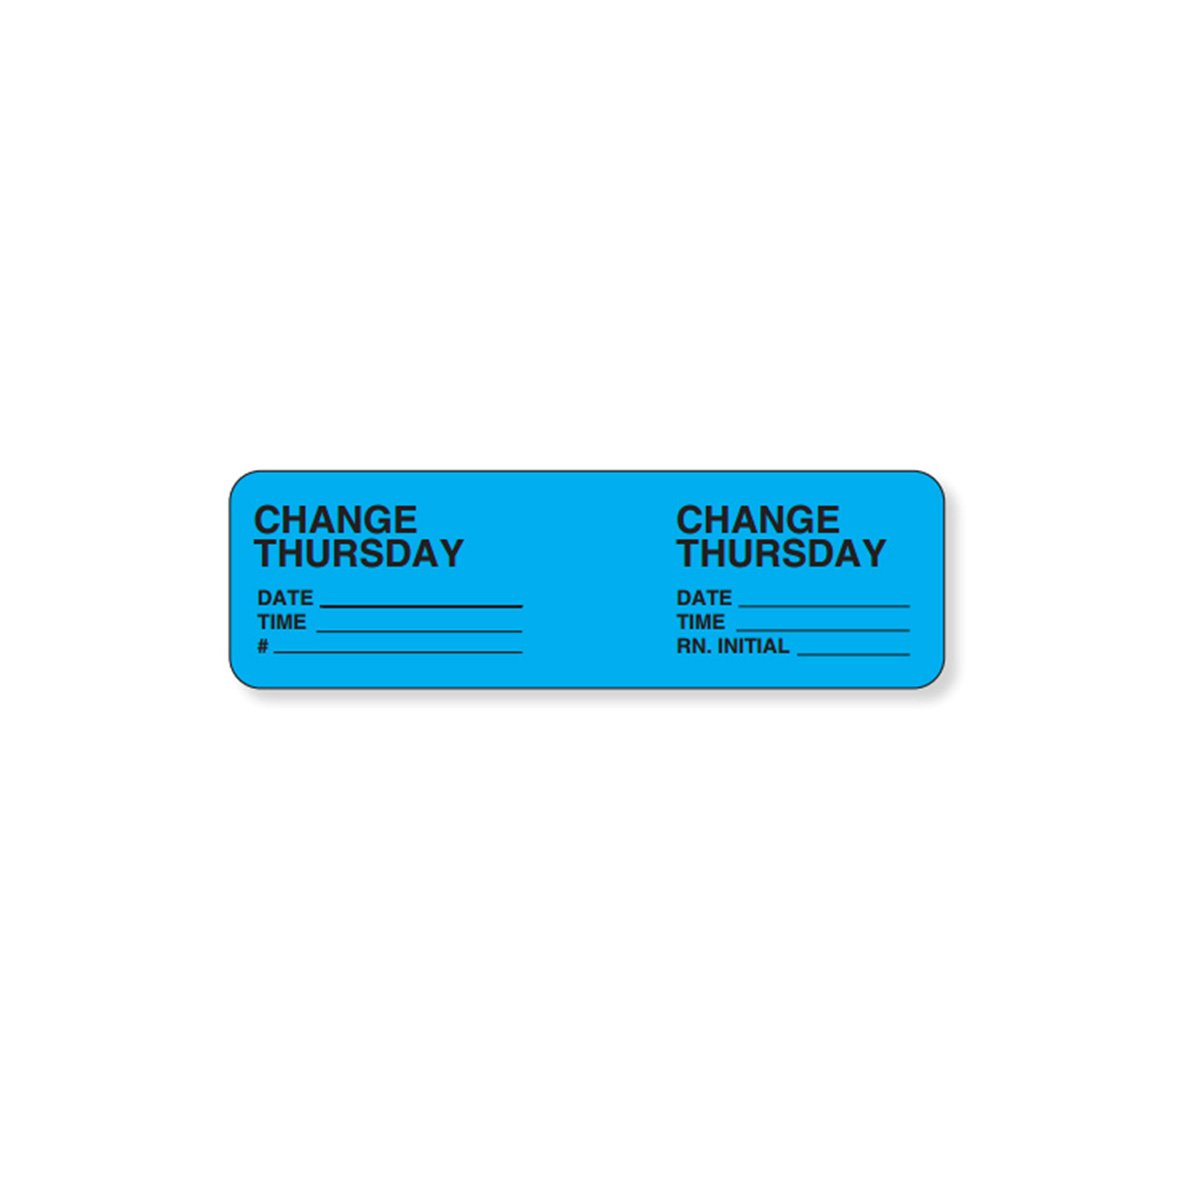 PDC Healthcare 59704491 IV Label Wraparound Paper, Permanent, Change Thursday, 2 7/8 x 7/8, Blue (Pack of 1000)